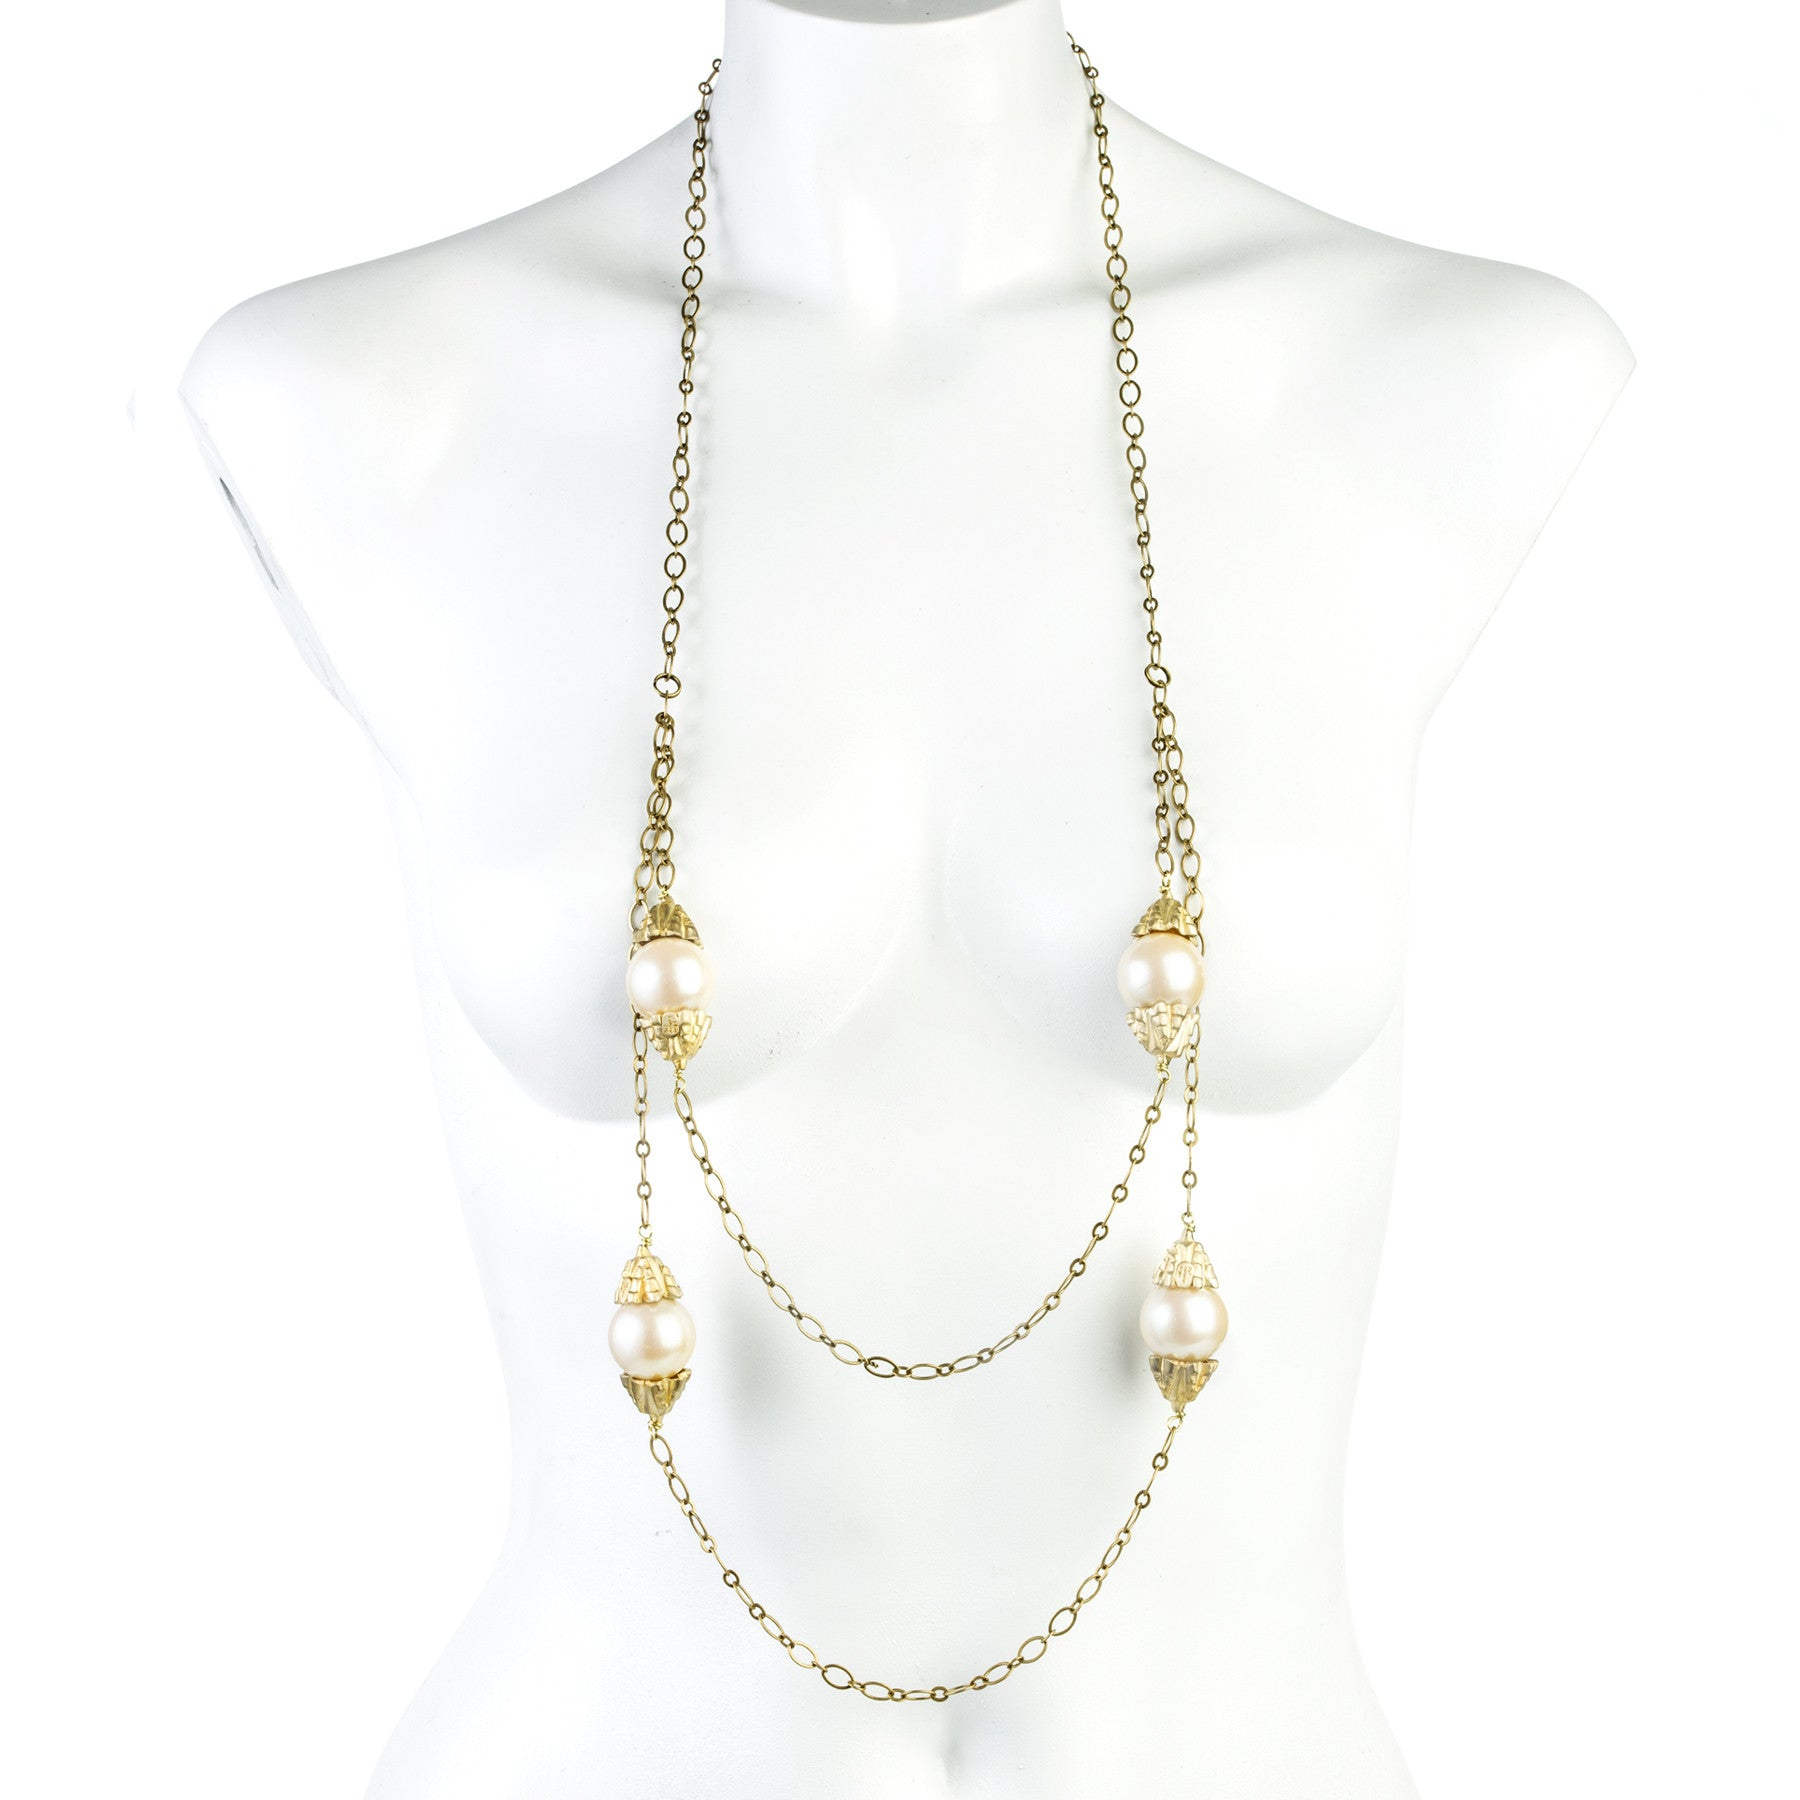 DECO PEARLS AND CHAINS